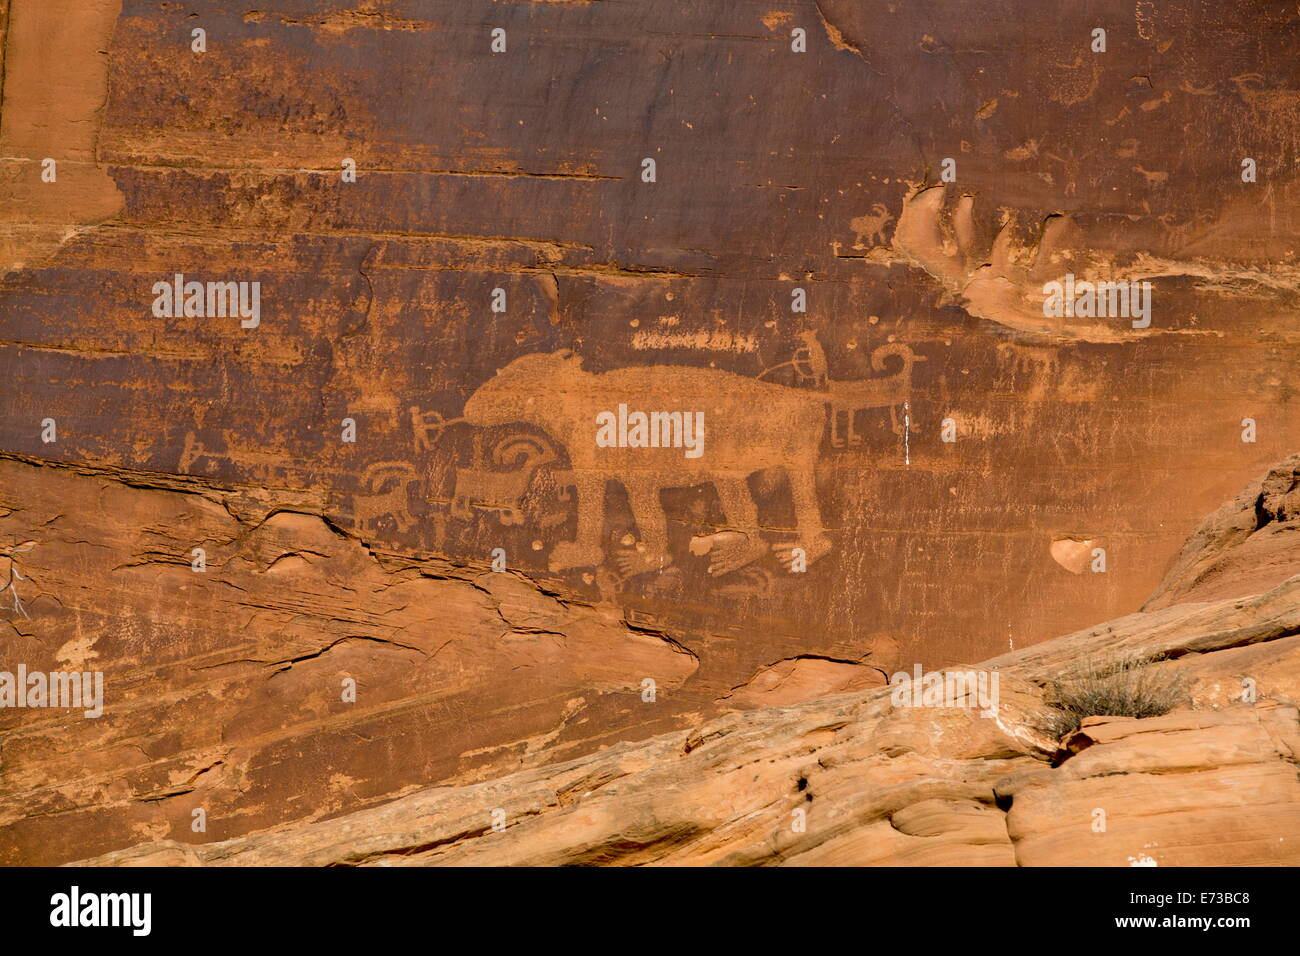 Petroglyphs, ancestral Puebloan, dating from AD 900 to AD 1250, Potash Road, near Moab, Utah, United States of America Stock Photo